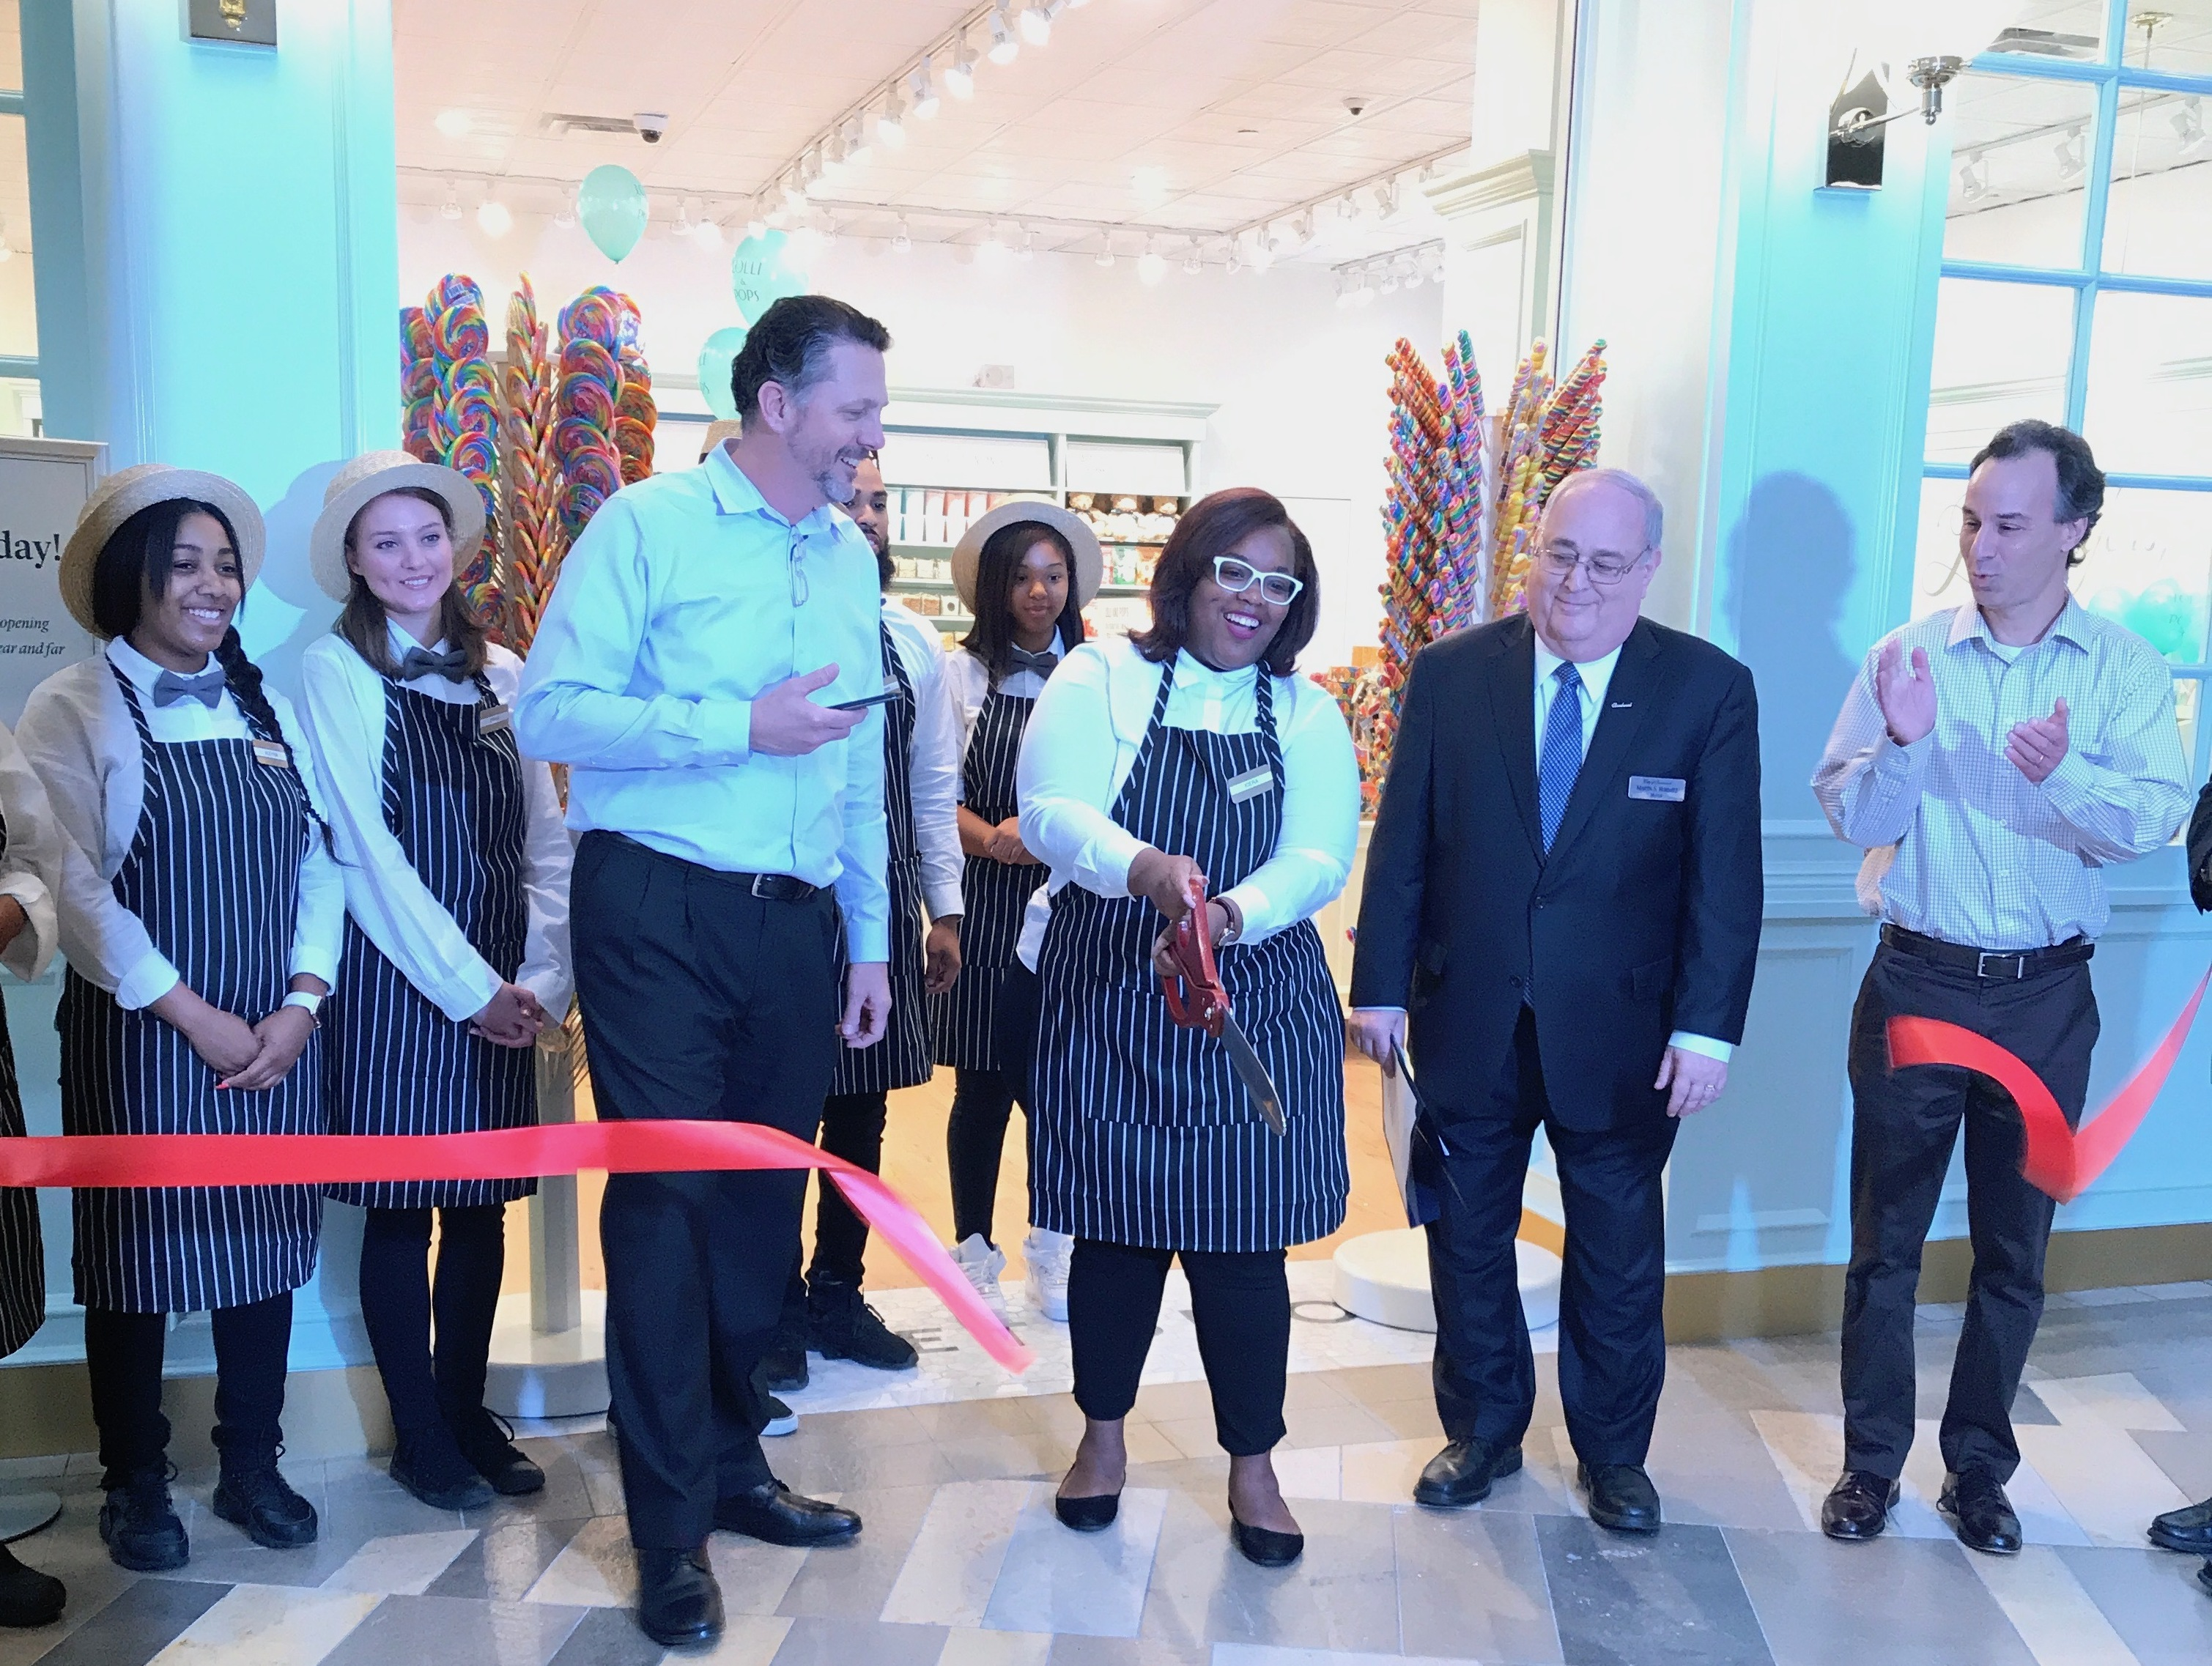 Ribbon cutting ceremony at Lolly and Pops